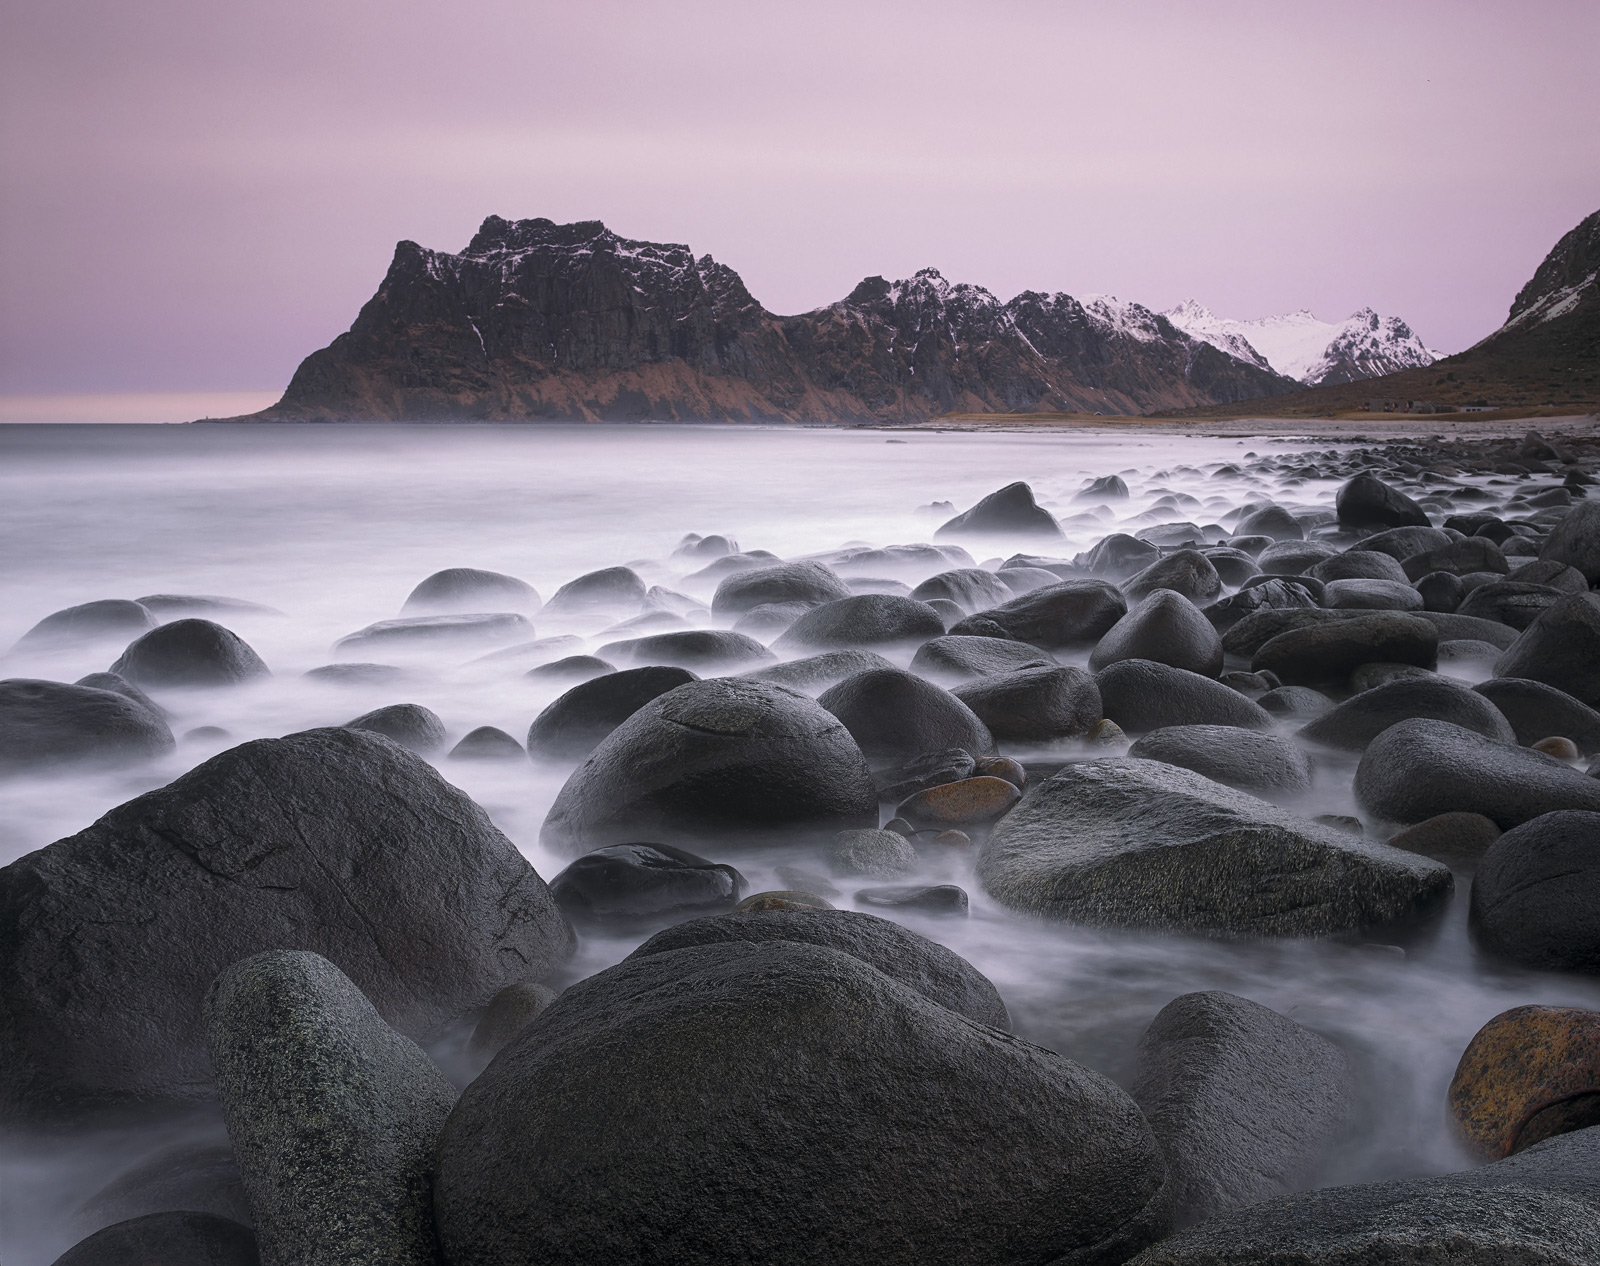 Extremely rough seas, high freezing winds and a stormy sky greeted us on our visit to Lofoten's magnificent boulder beach at...